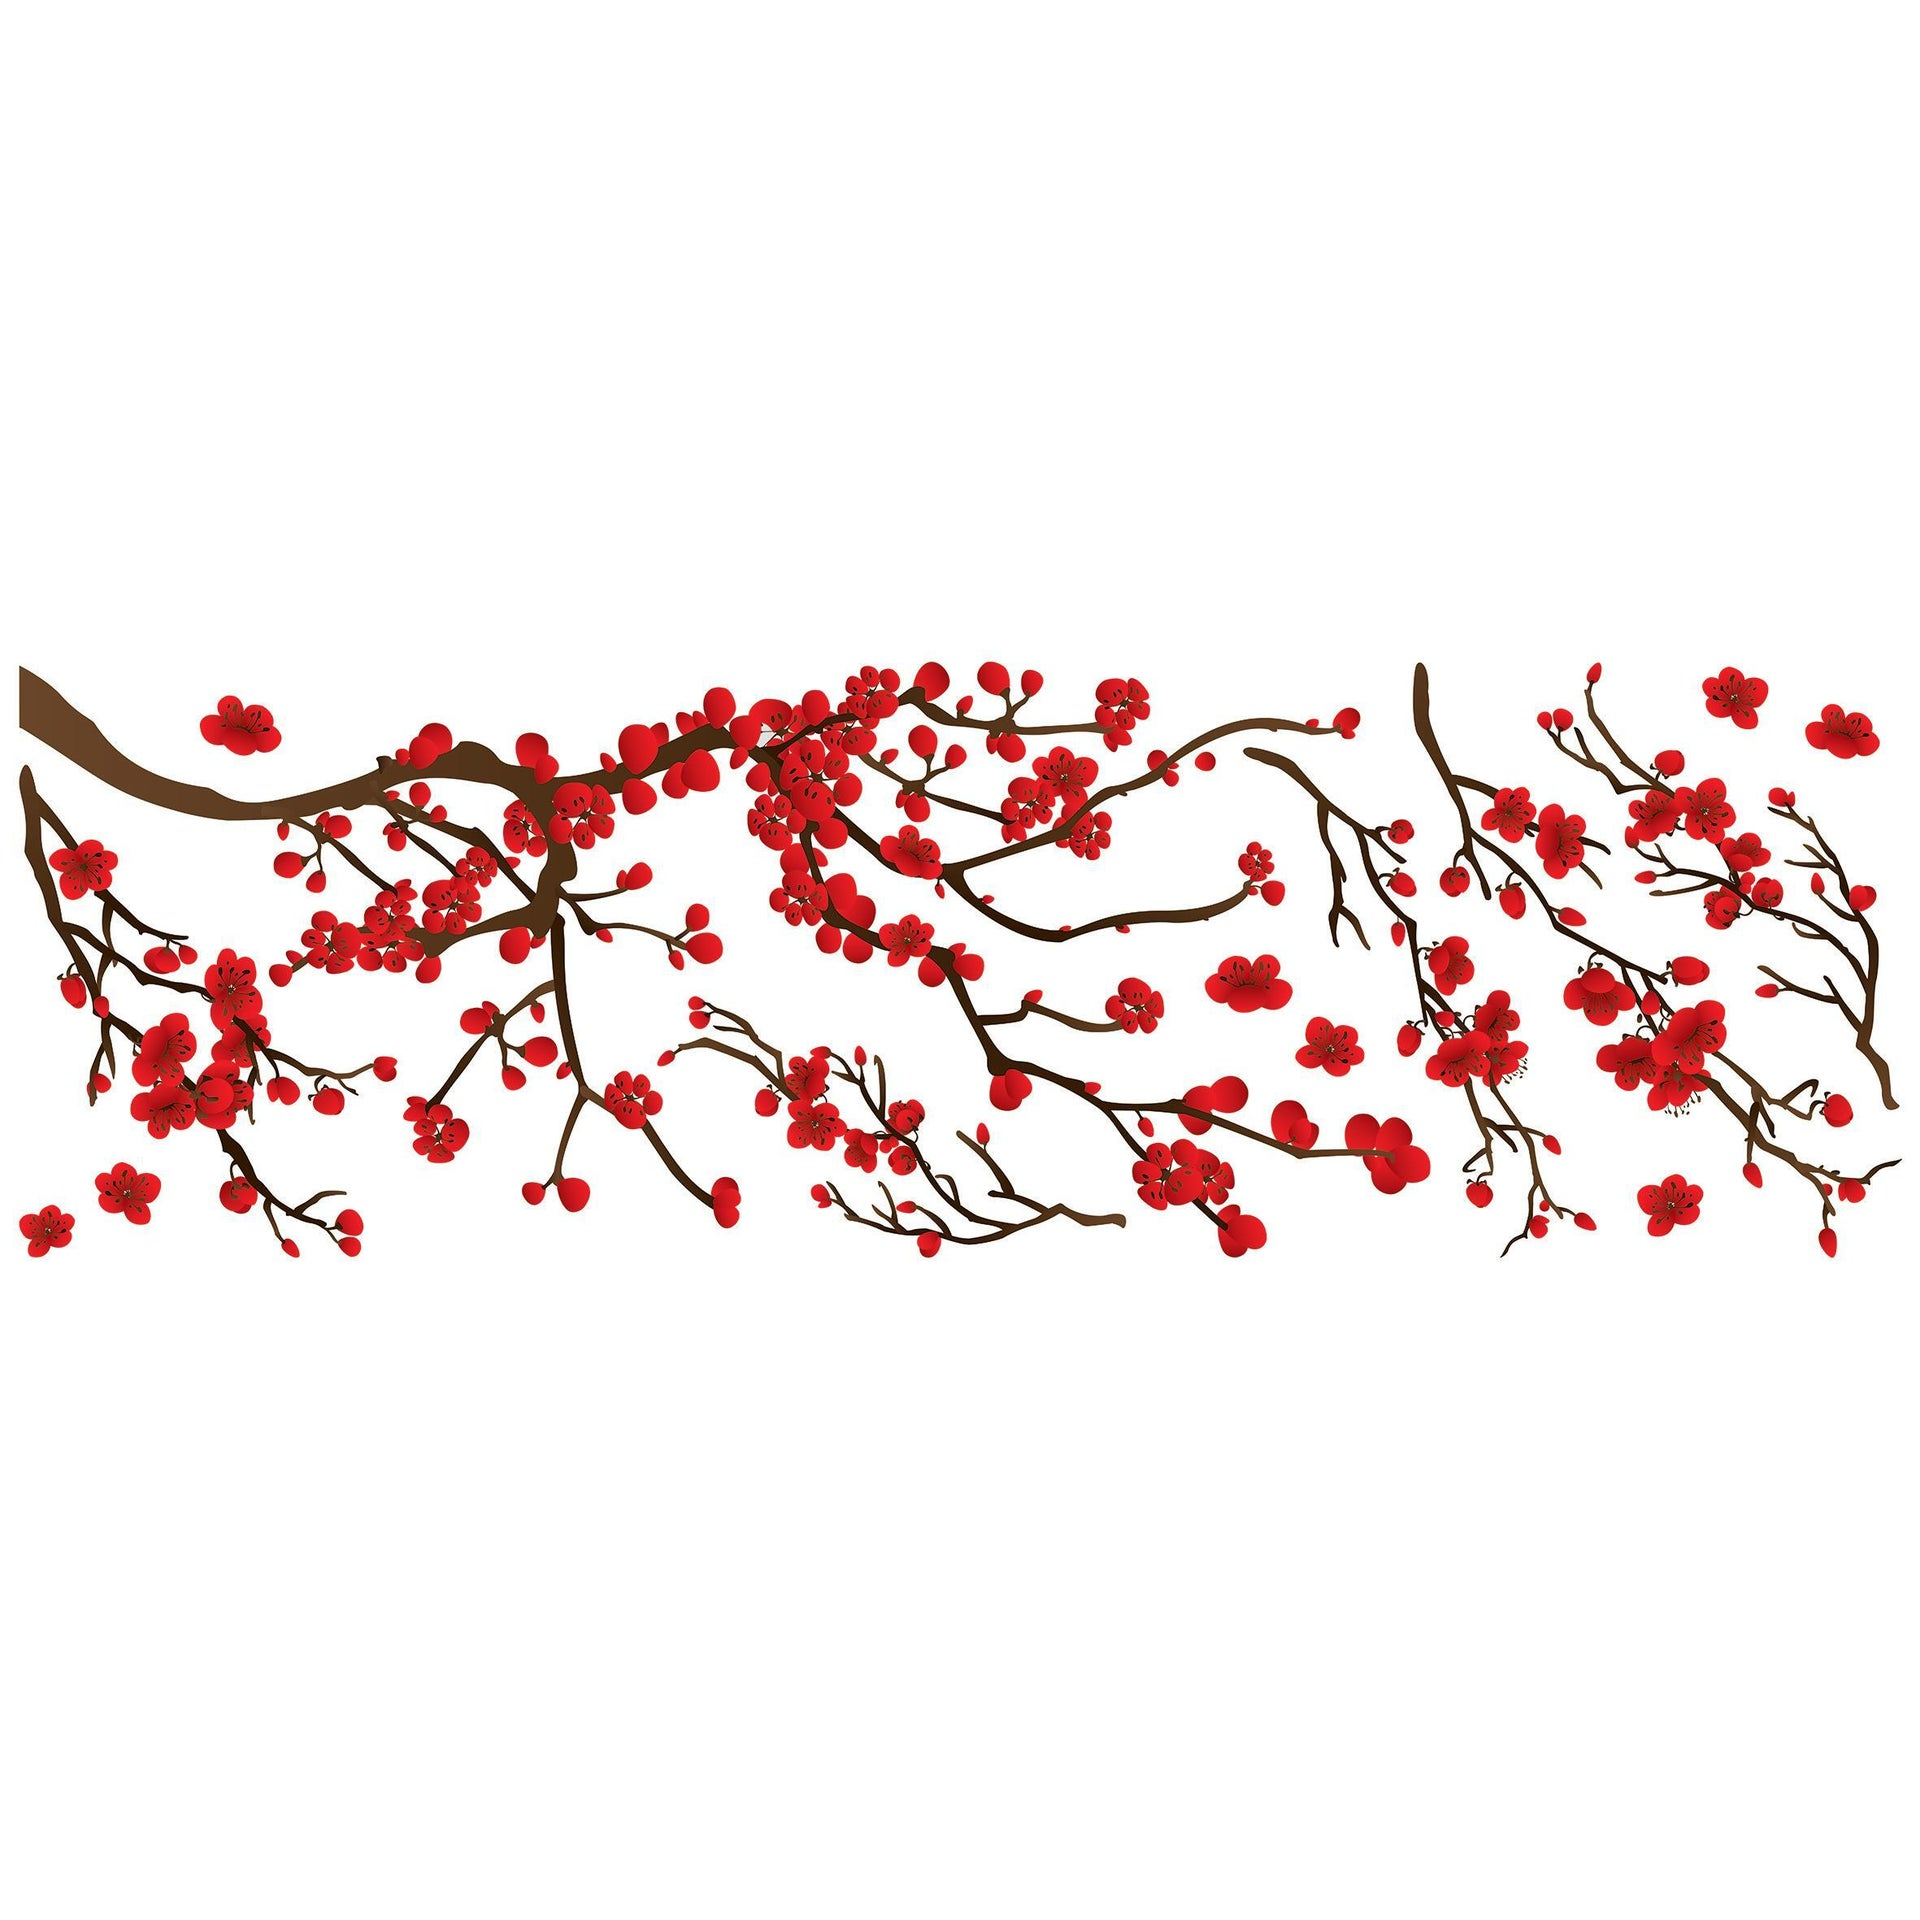 Sticker Red ramage 35x100 cm - 2